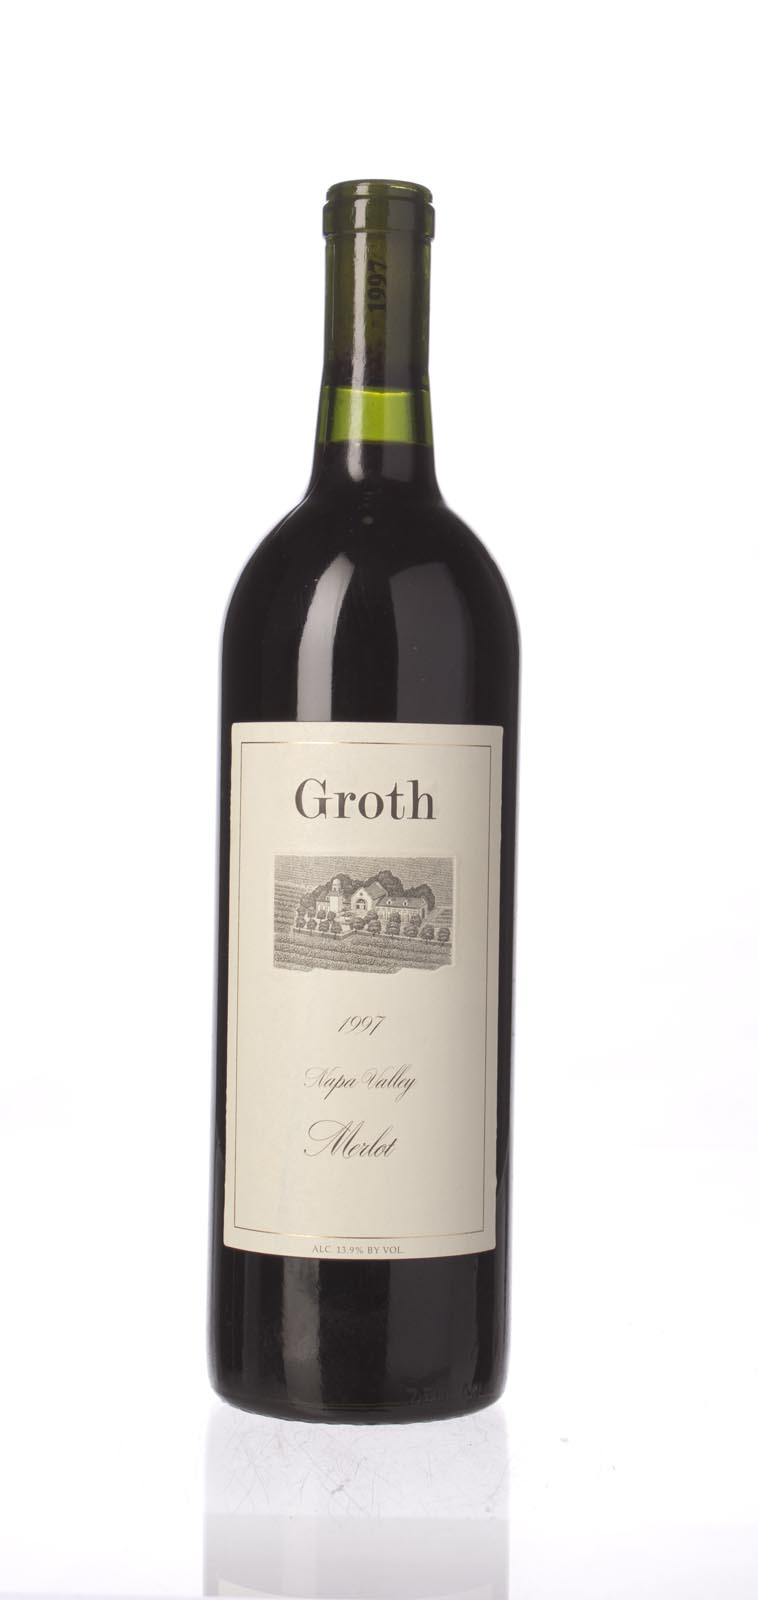 Groth Vineyards Merlot 1997, 750ml () from The BPW - Merchants of rare and fine wines.